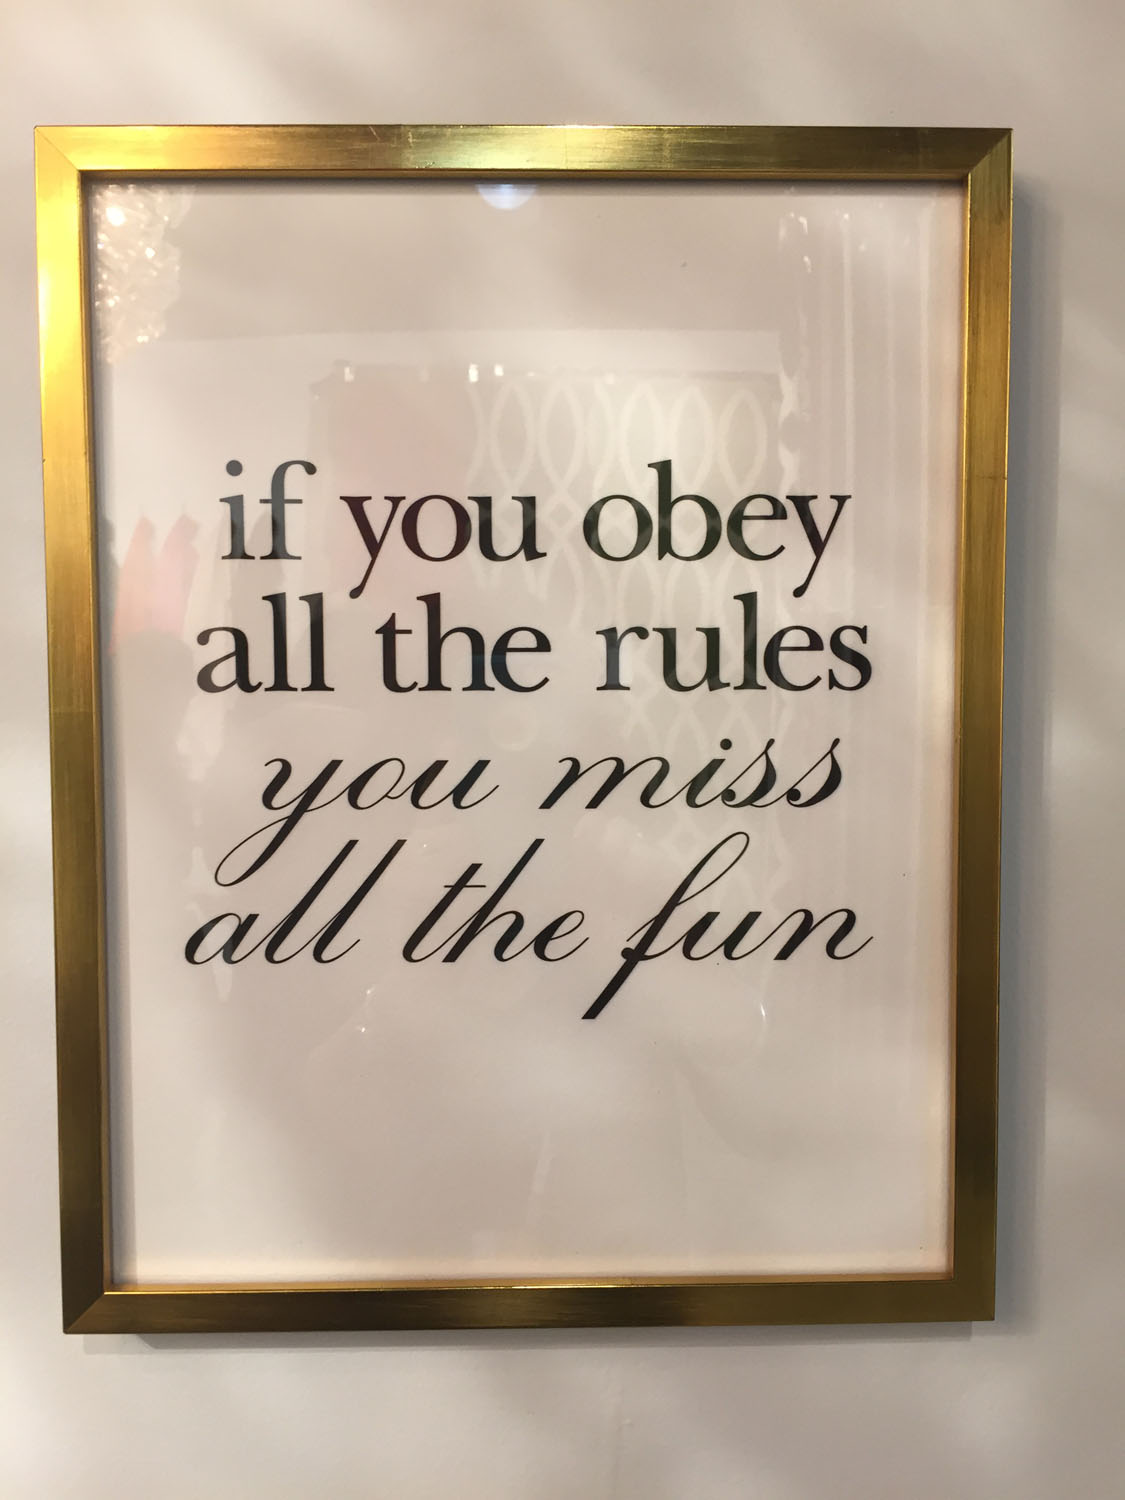 don't-obey-all-the-rules.jpg